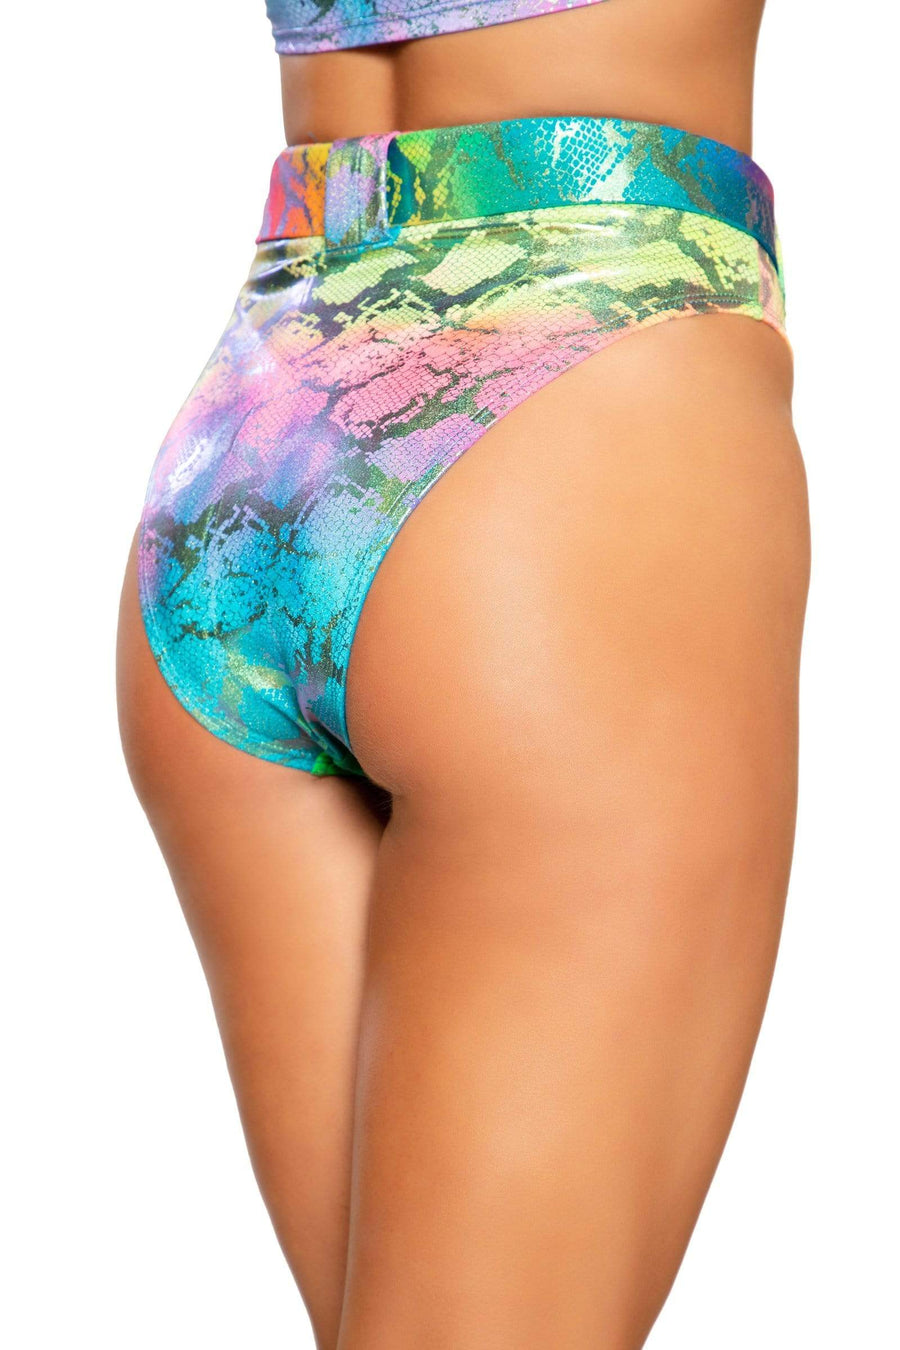 Roma M/L / Print Multi Colored Snake Skin High Rise High-Waist Shorts w/ Belt Detail SHC-3747-PRNT-M/L-R Snake Skin High-Waist Shorts w/ Belt Festival Rave EDM Dance Roma 3747 Apparel & Accessories > Costumes & Accessories > Costumes